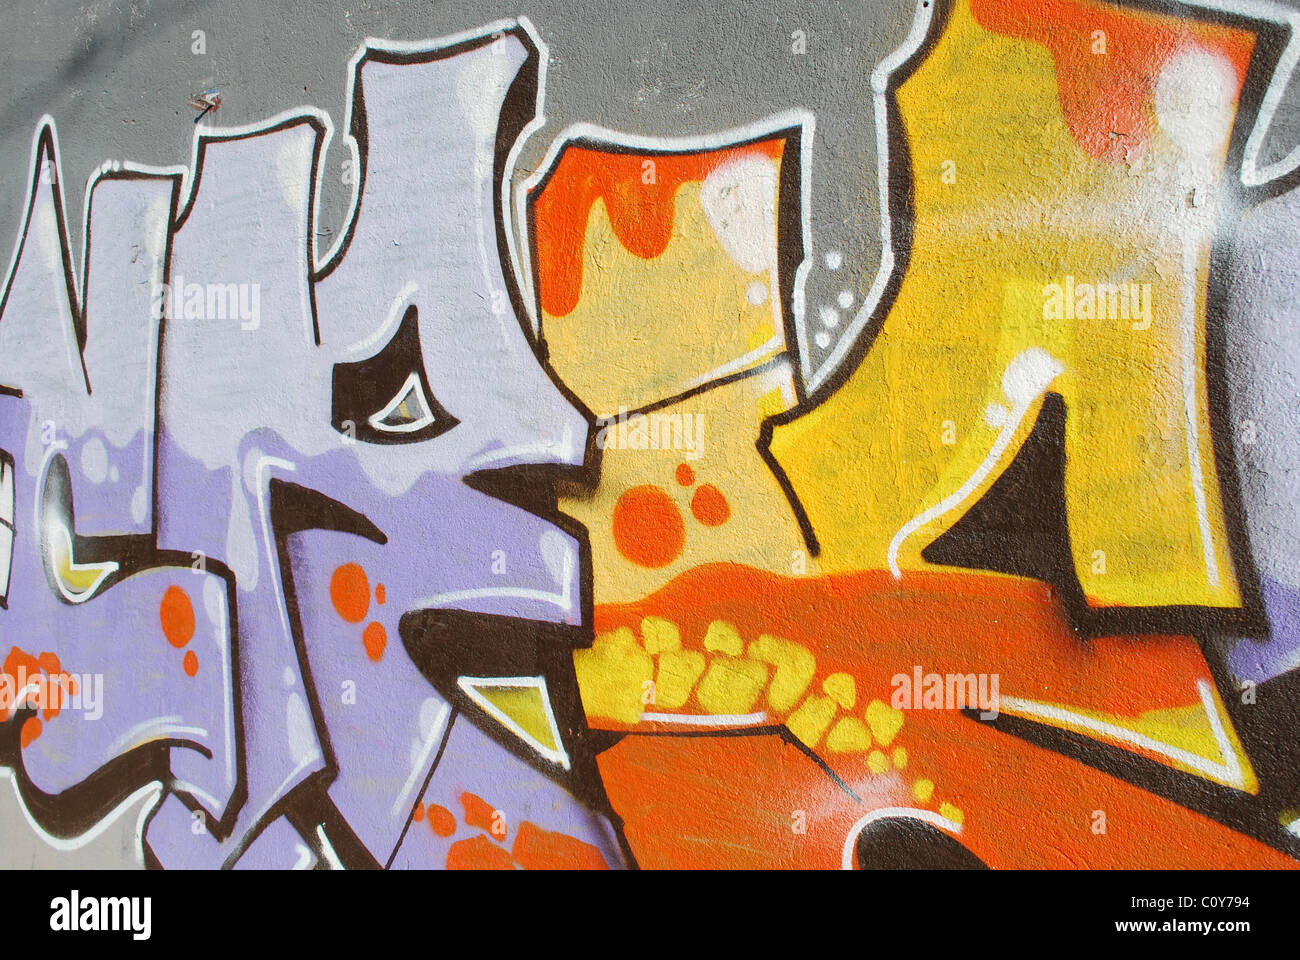 Bmx Art Wall Stock Photos & Bmx Art Wall Stock Images - Alamy